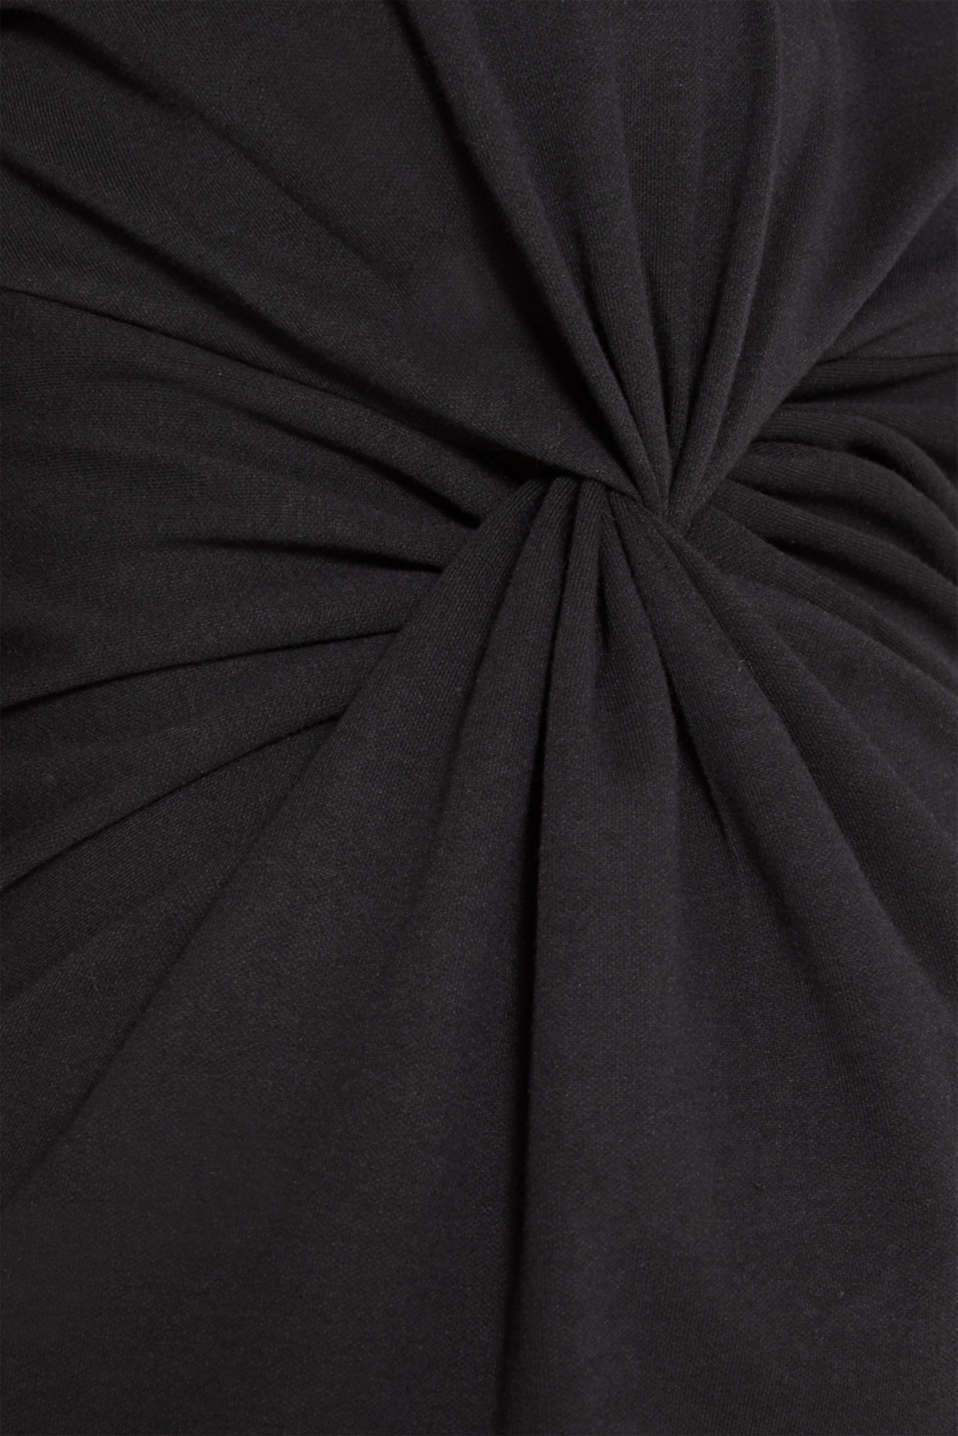 Draped stretch jersey dress, LCBLACK, detail image number 4